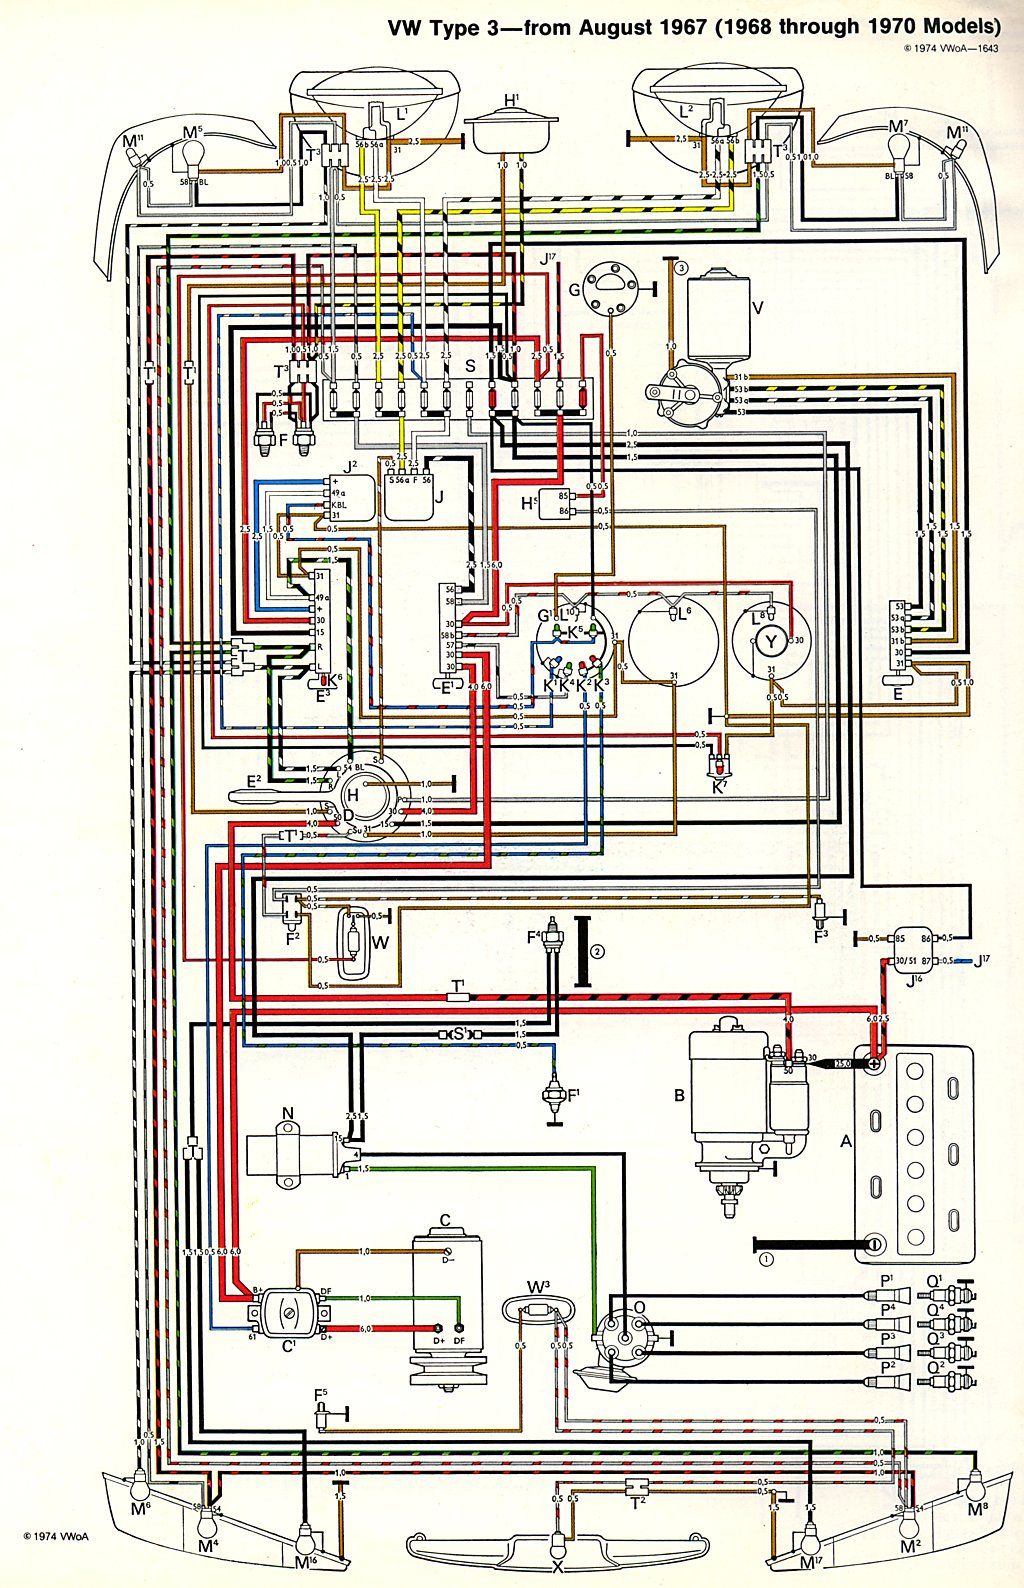 Vw Type 3 Wiring Diagram Just Another Blog Door Thesamba Com Diagrams Rh 2002 Eurovan Fuel Injection